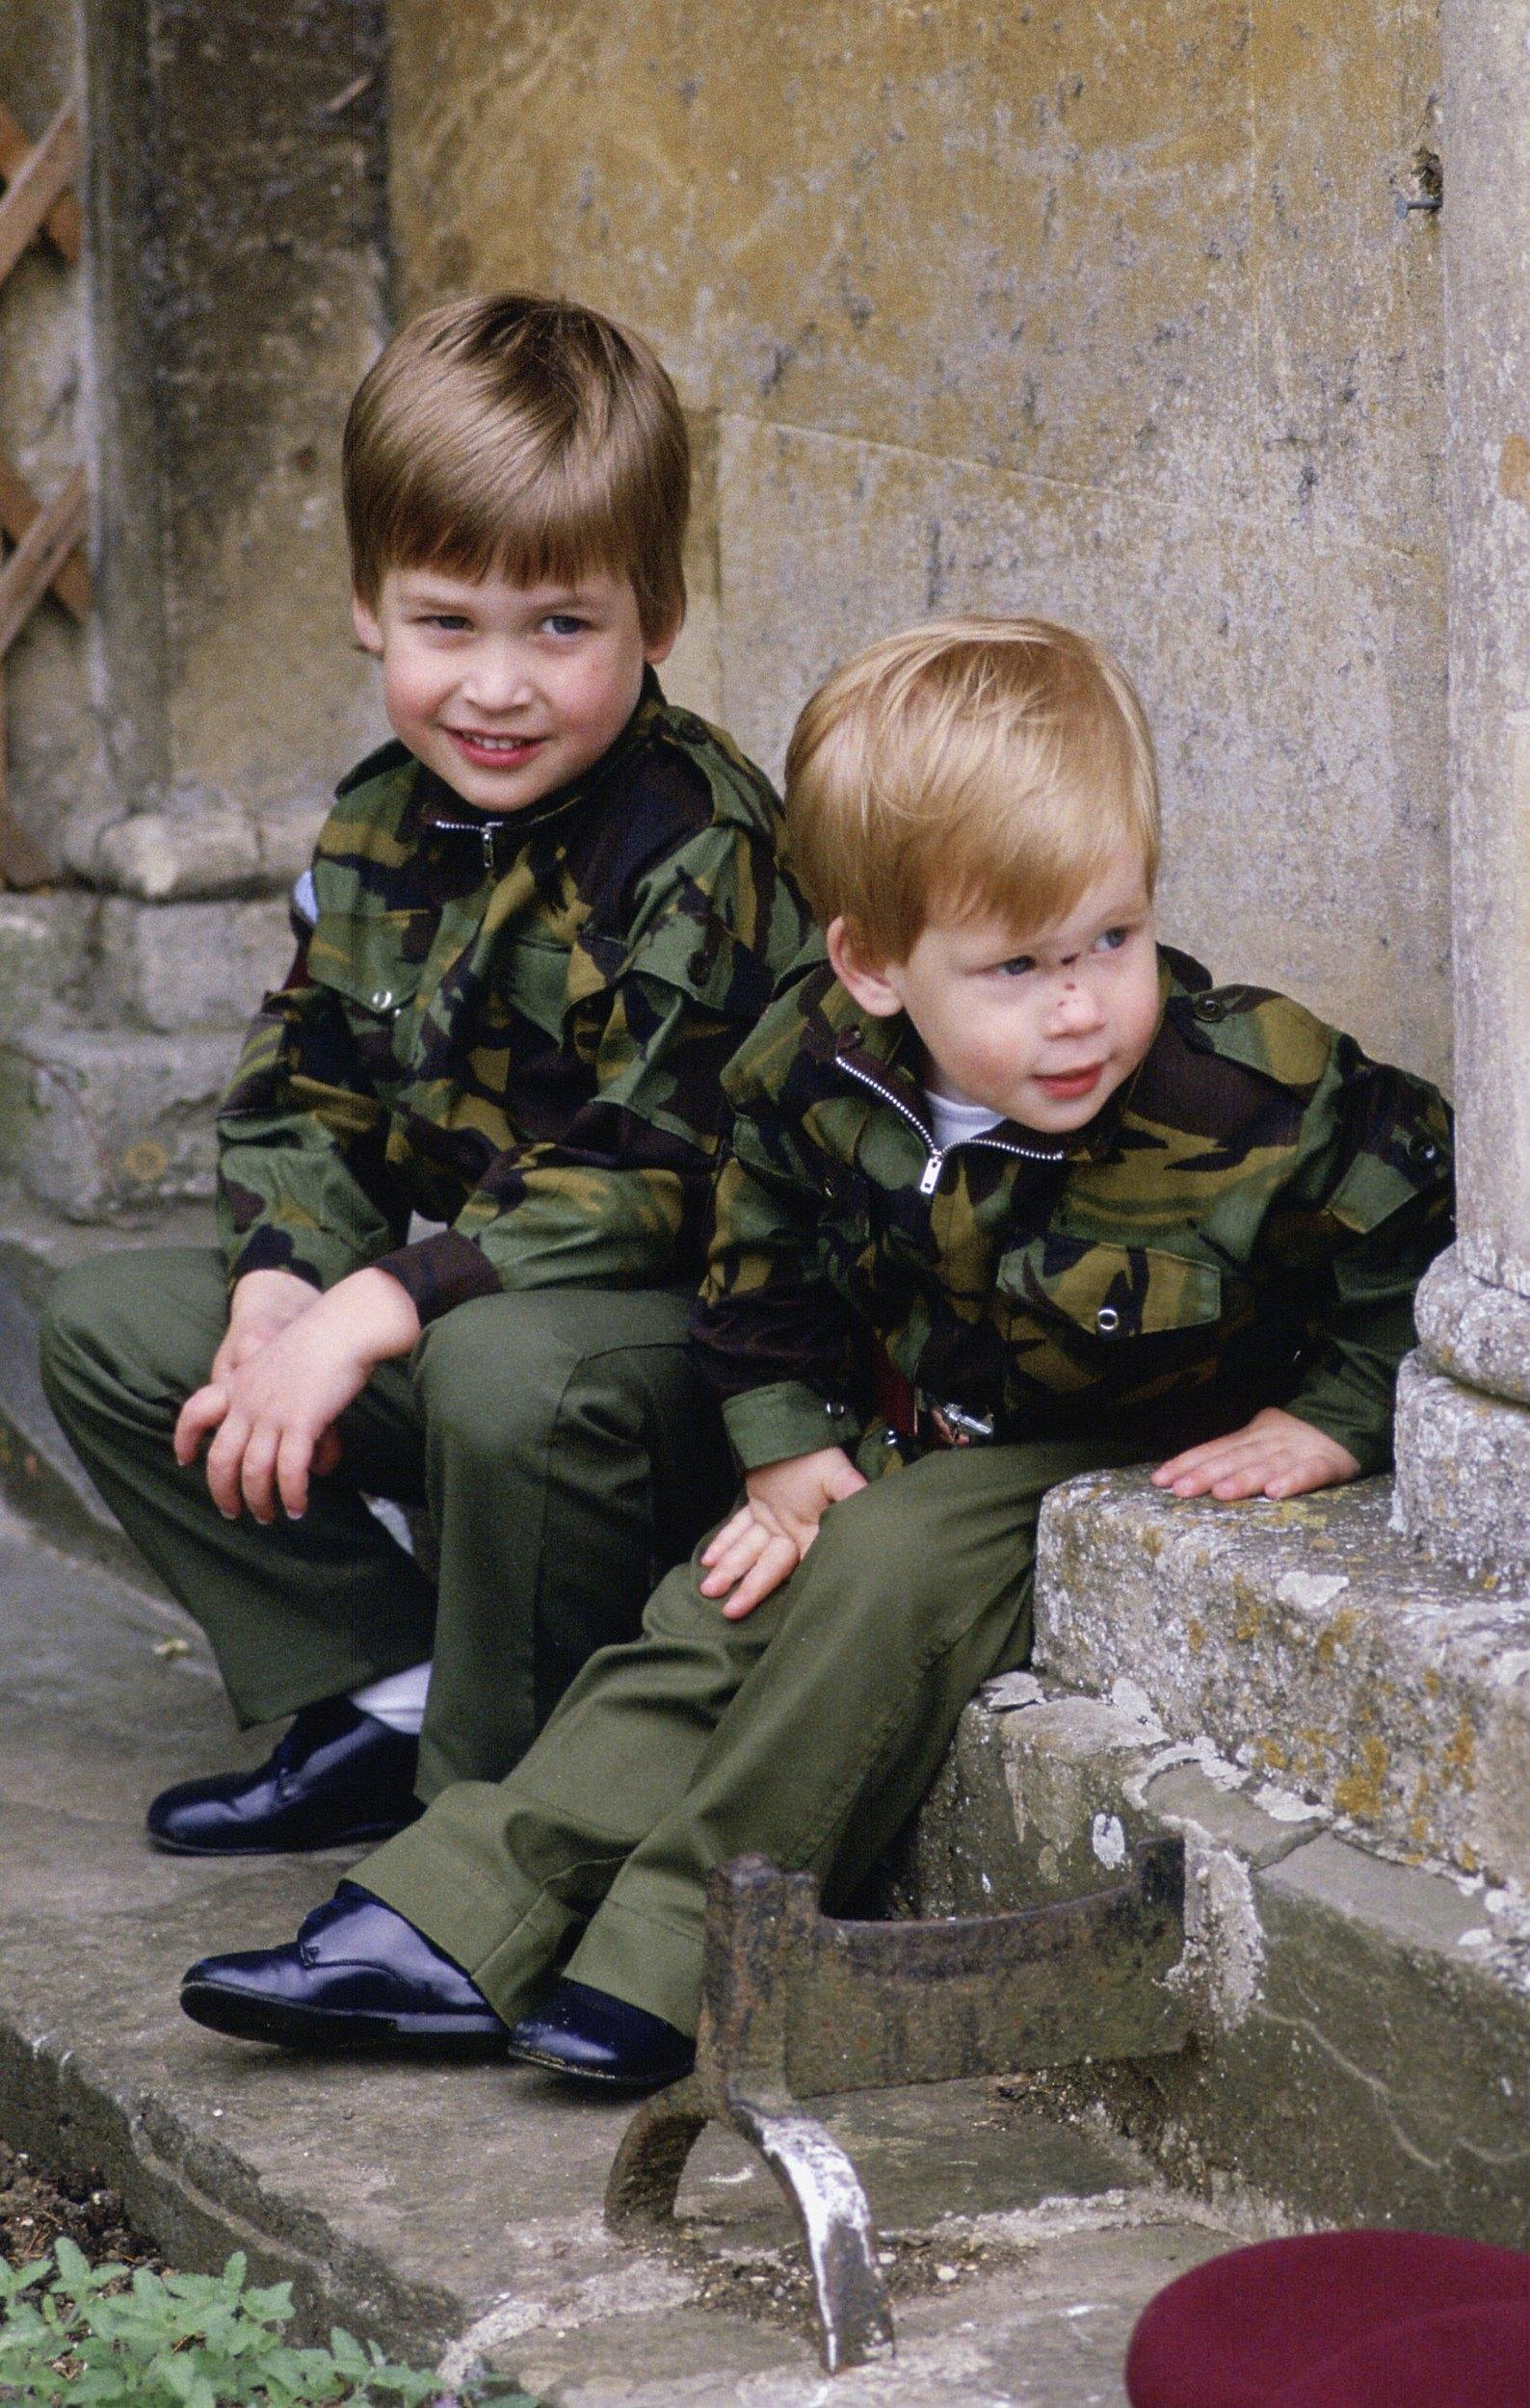 TETBURY, ENGLAND - JULY 18: Prince Harry and Prince William sit together on the steps of Highgrove House wearing army uniforms on July 18, 1986 in Tetbury, England. (Photo by Tim Graham/Getty Images)